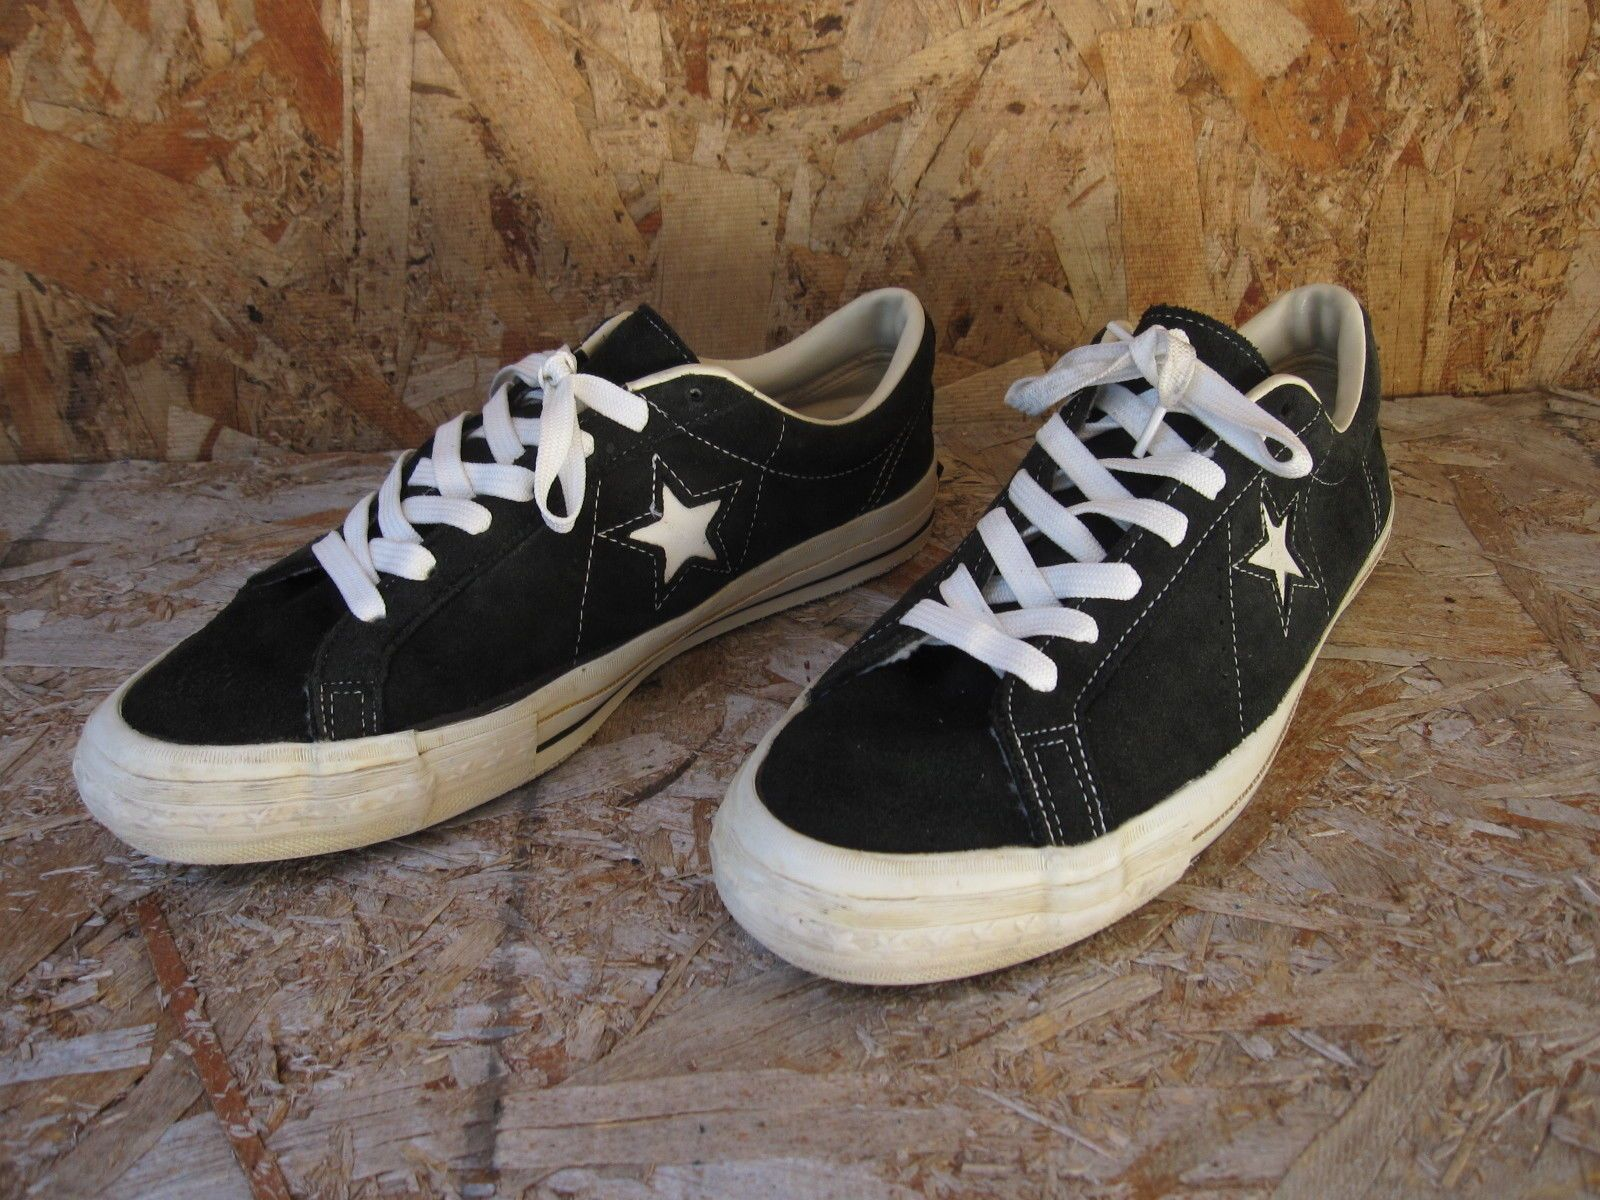 0ad638ee48f Vtg Men's Converse One Star Low Made in USA Shoes Sz 9.5 Black Suede ...